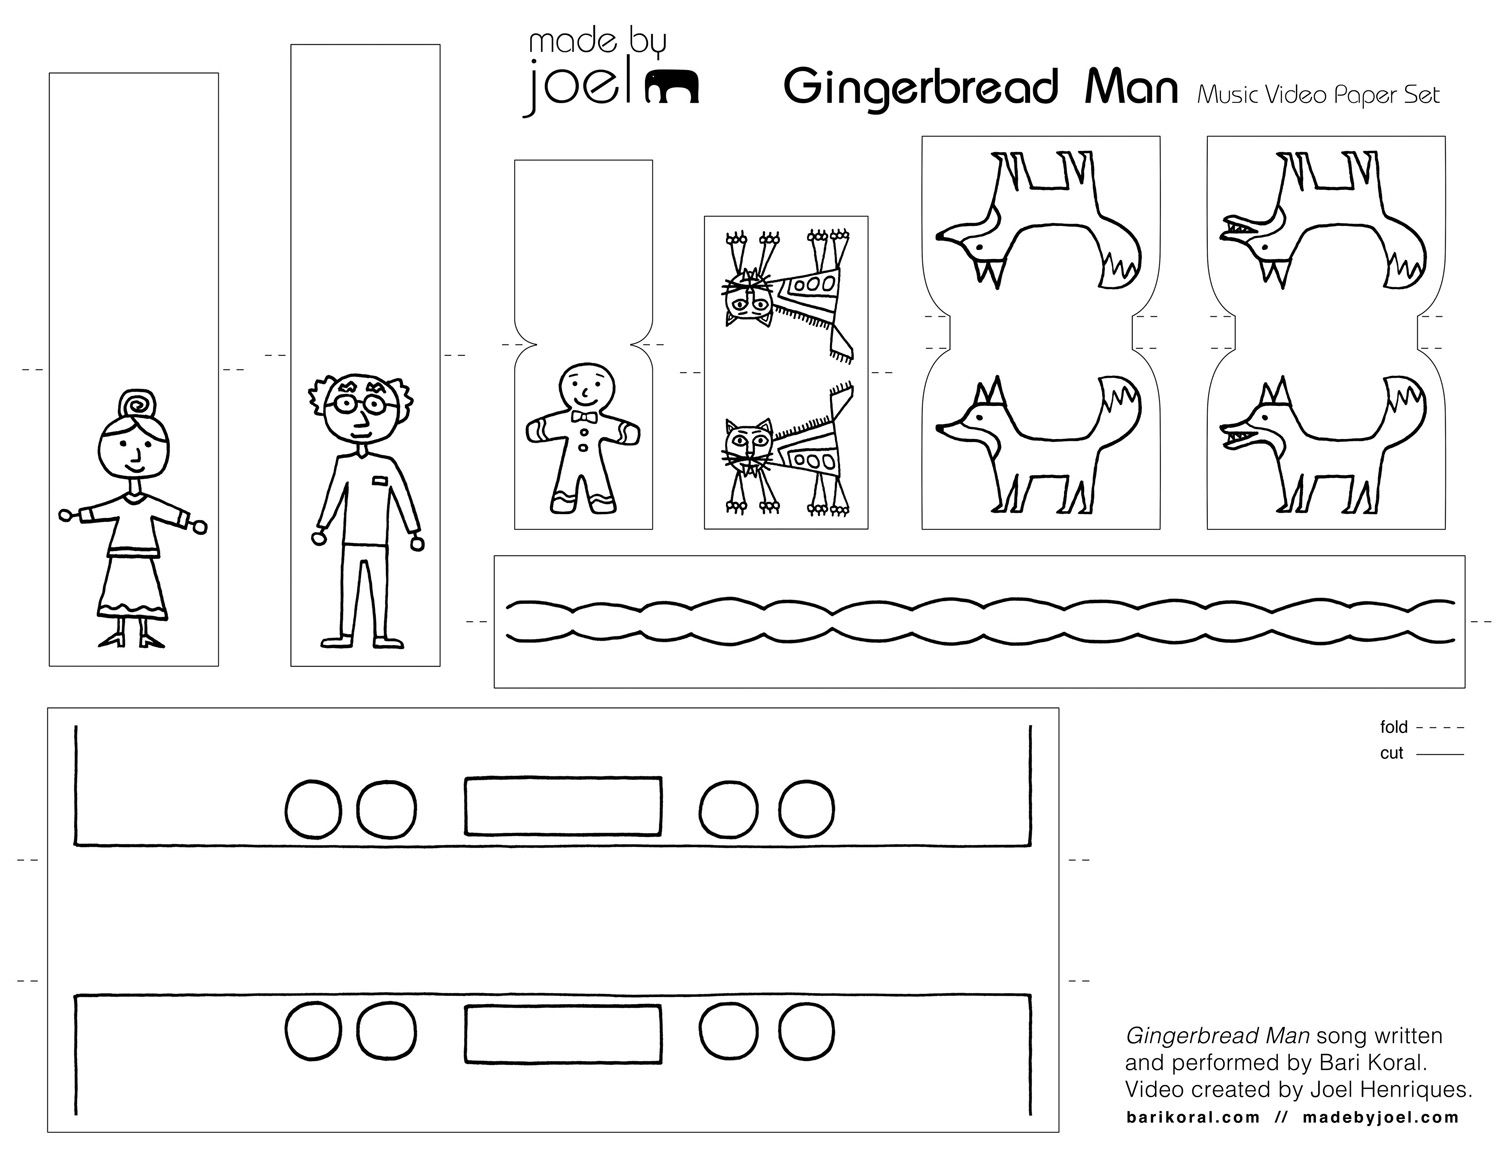 Made By Joel Gingerbread Music Video And Printable Paper